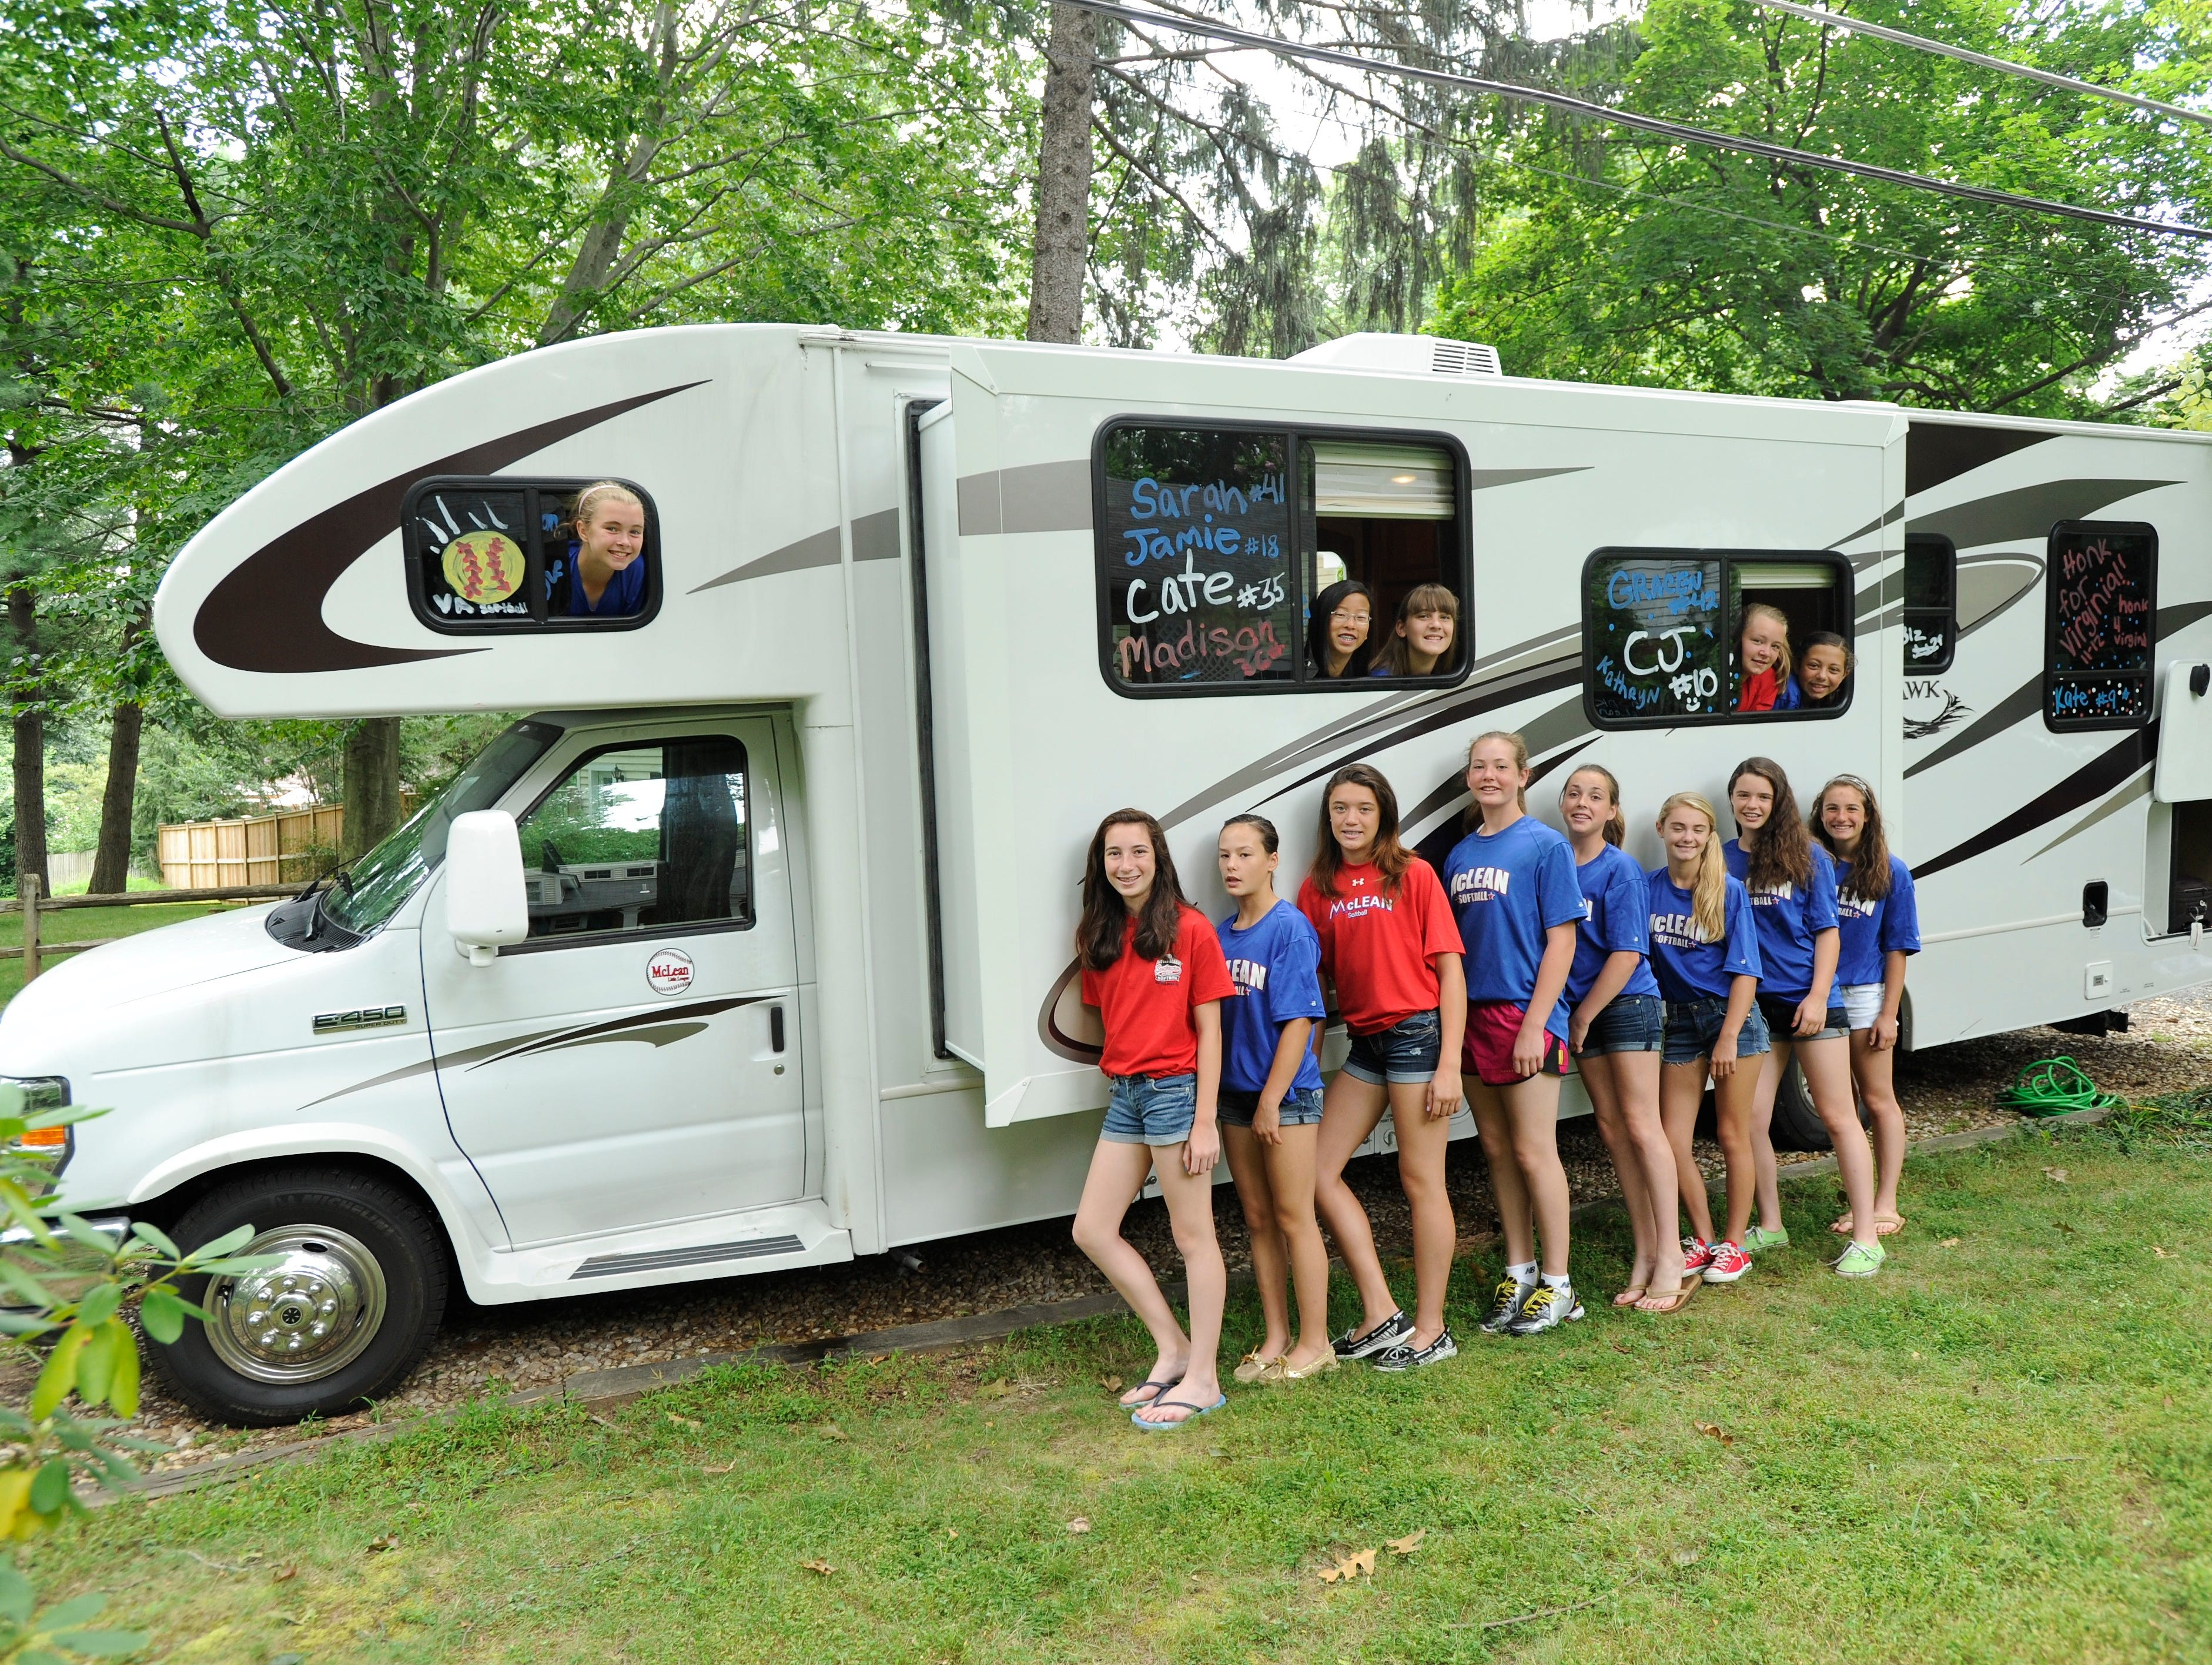 USA TODAY reporter Jayne O'Donnell drove 1,400 miles in a rented RV with six teenage girls. The Virginia all-star softball team that traveled in the rented Jayco Greyhawk RV, are, looking out of windows from left, Kate Haas, left, Jamie Wang, Sarah Stahlman, Gracen Govan and Gabi Norton.  Standing are, from left, Rachel Remer, Riley Simon, Madison Wolfe, Kathryn Sandercock, Cate Willing, Caitlin Jorae, Elizabeth Hoeymans, and Julia Jones.